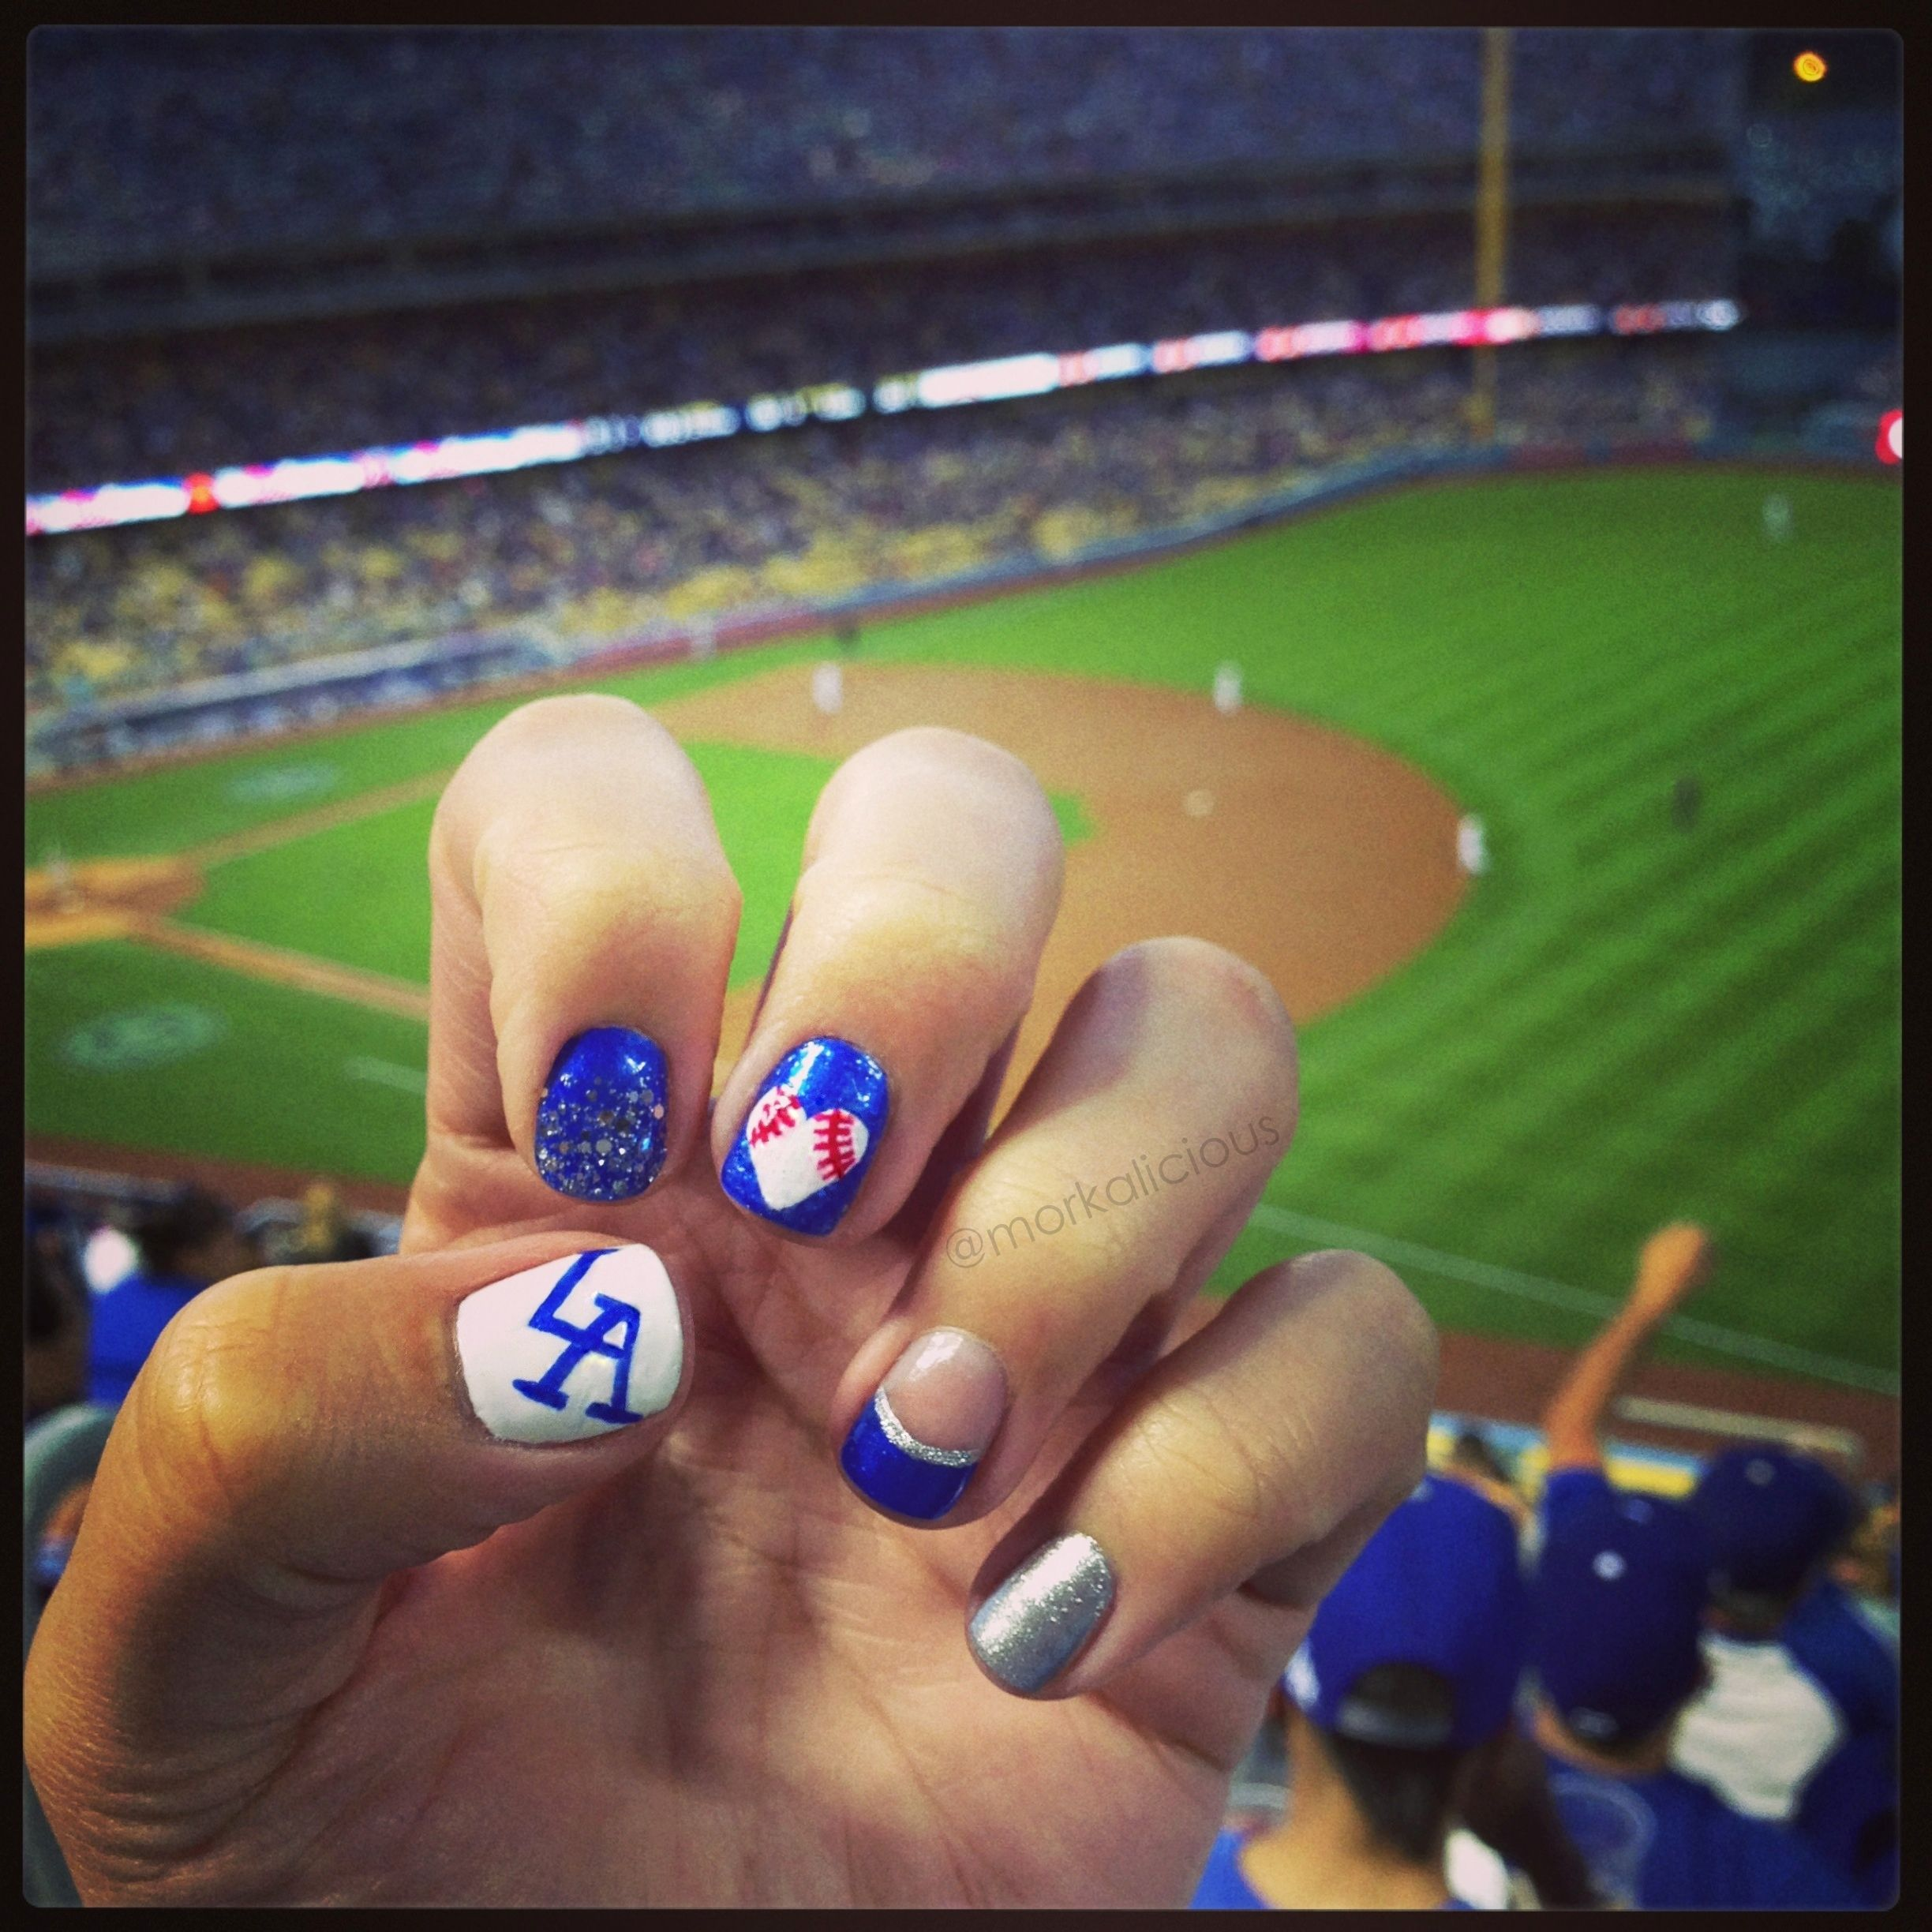 My Nail Art For The Hello Kitty Blanket Giveaway At Dodger Stadium